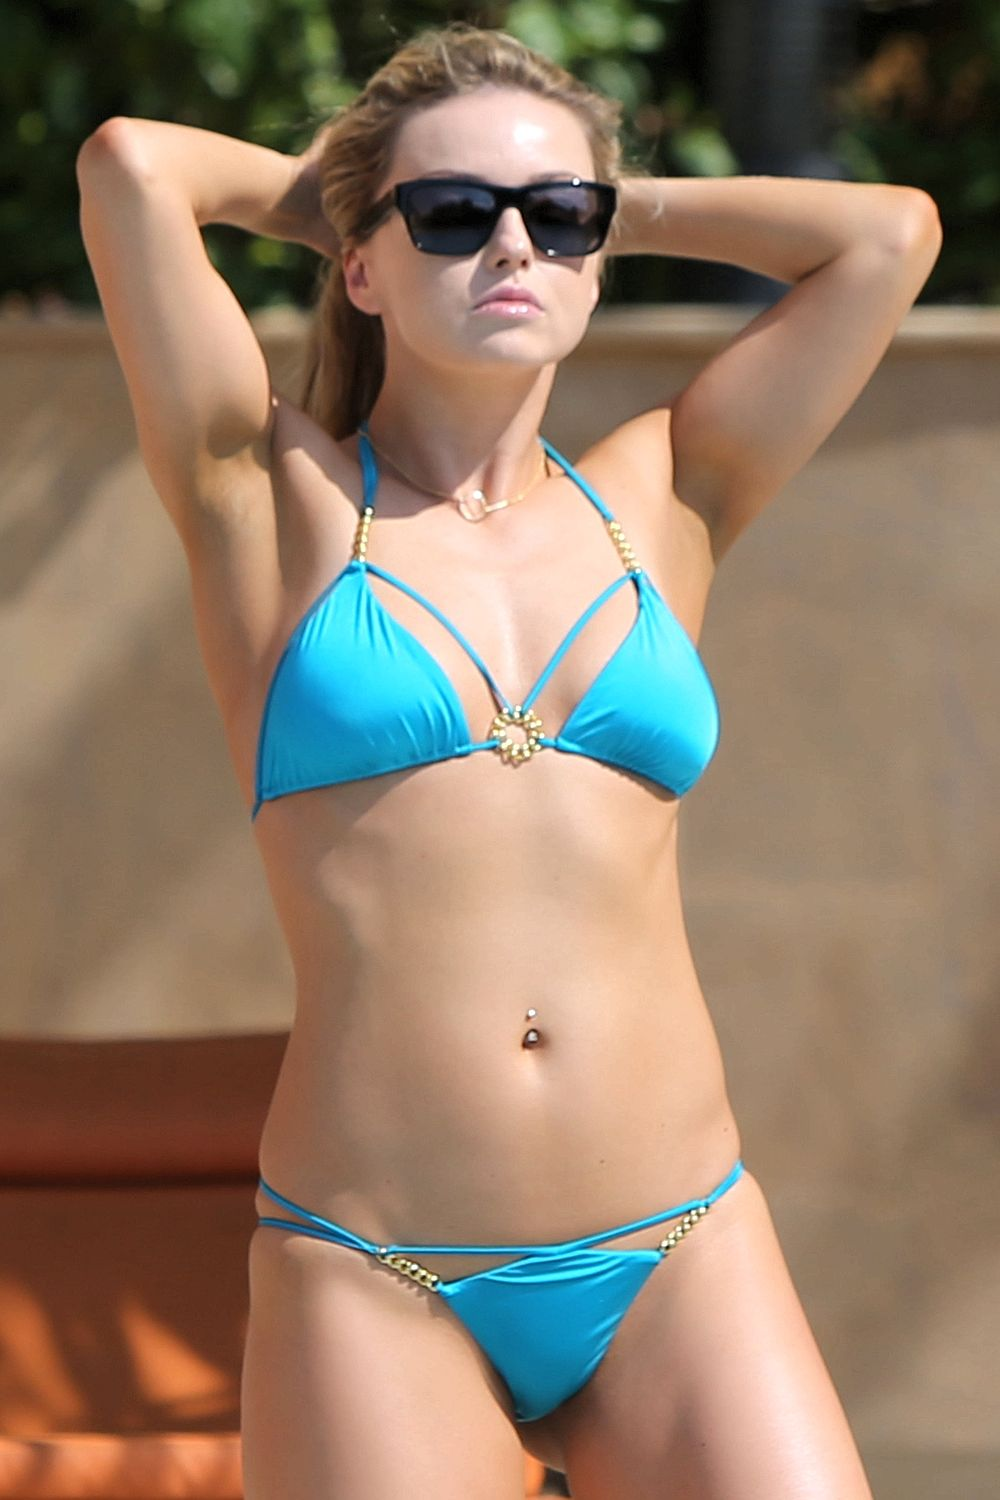 ola-jordan-wearing-a-bikini-in-dubai-06 | celebrity-slips.com